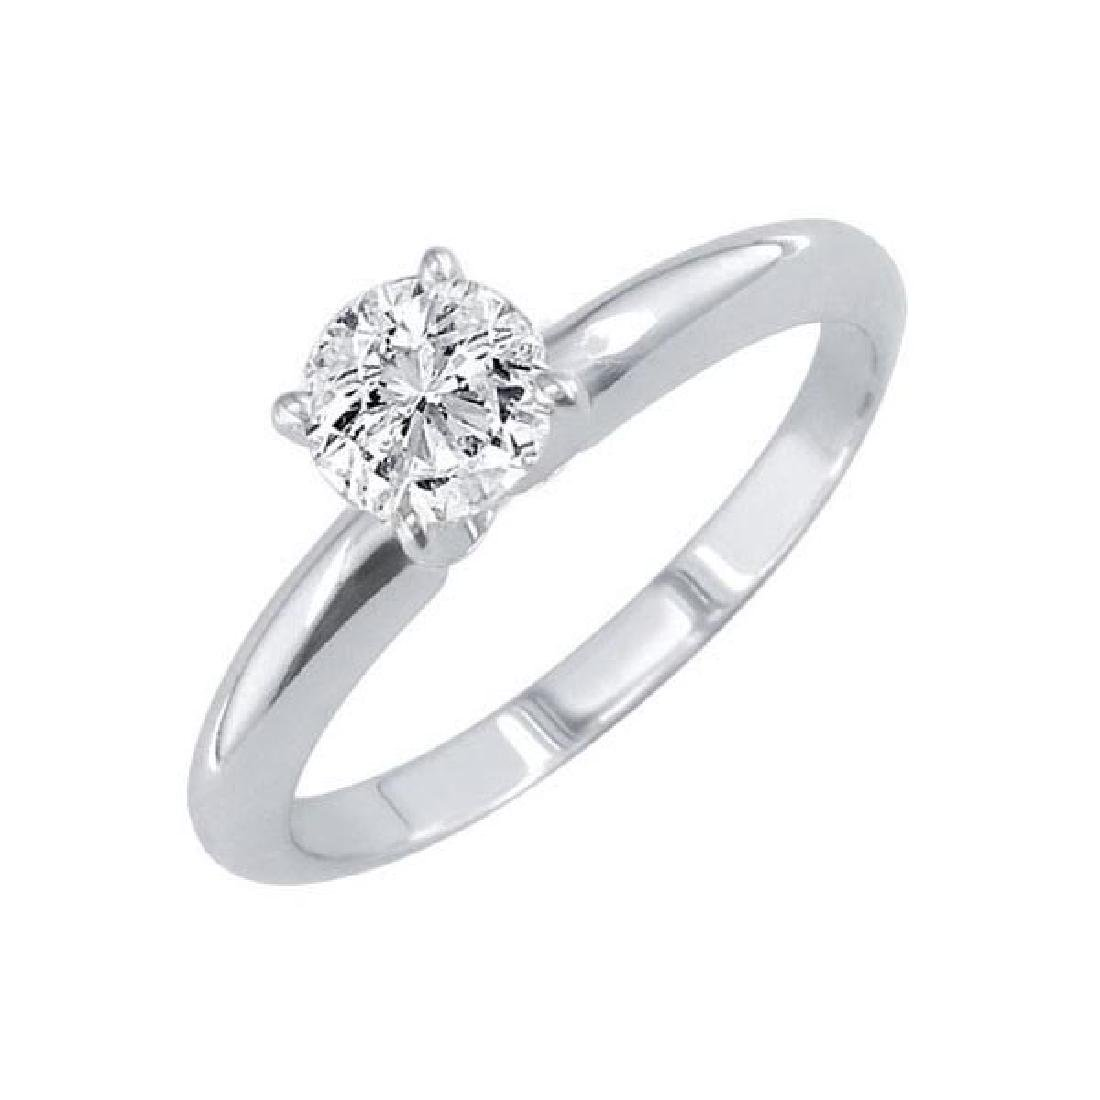 Certified 0.84 CTW Round Diamond Solitaire 14k Ring E/S